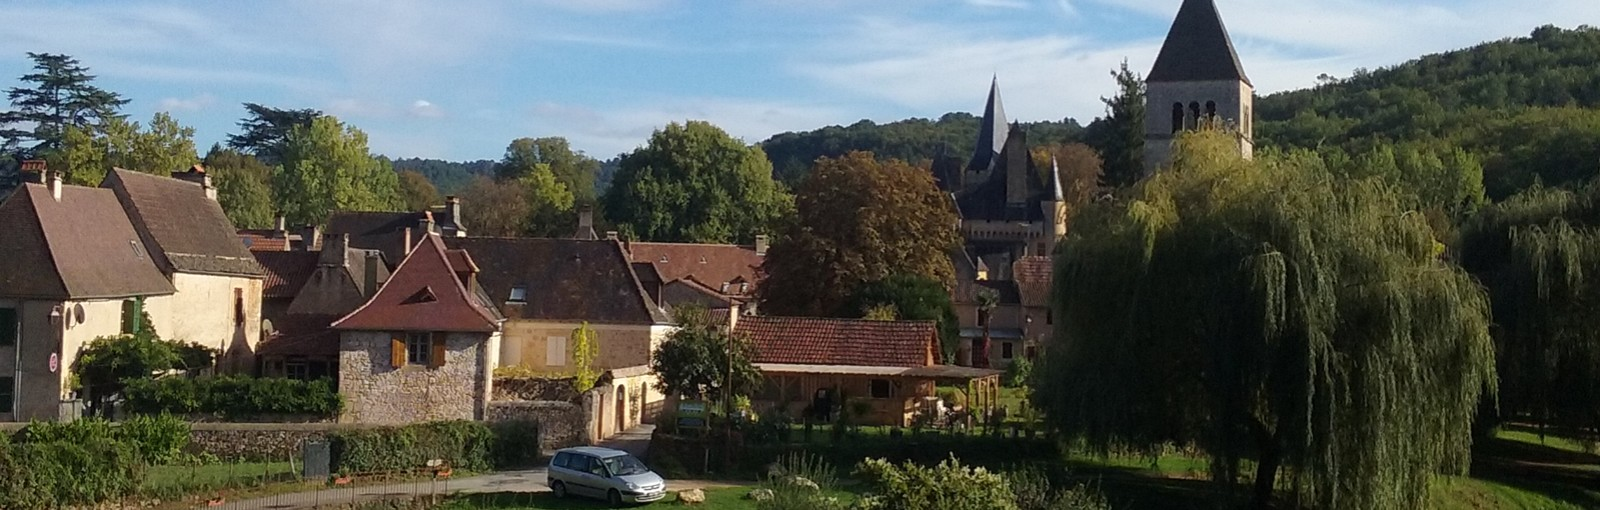 Tours Multi-days tours from Bordeaux or Sarlat - Dordoña y Burdeos - TOURS REGIONALES